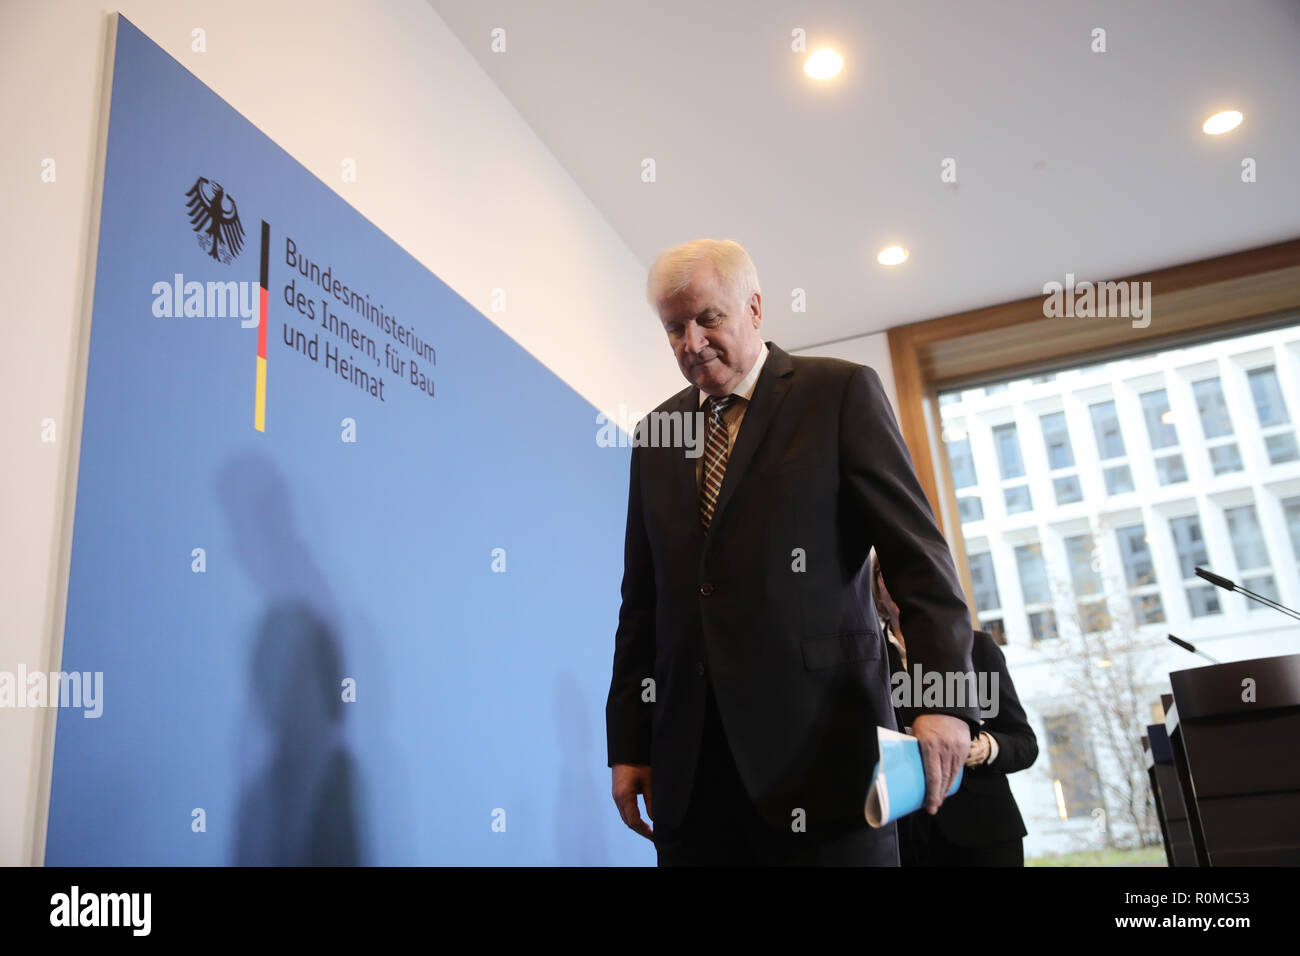 Berlin, Germany. 05th Nov, 2018. Interior Minister Horst Seehofer (CSU) leaves a press statement in the Interior Ministry on the management of the Federal Office for the Protection of the Constitution (BMI). Seehofer is putting the controversial president of the German Office for the Protection of the Constitution, Maaßen, into temporary retirement. The background to this is that Maaßen, in a farewell speech, had strongly criticized parts of the coalition and again massively defended his controversial remarks on 'hunt hunting' in Chemnitz. Credit: Michael Kappeler/dpa/Alamy Live News - Stock Image